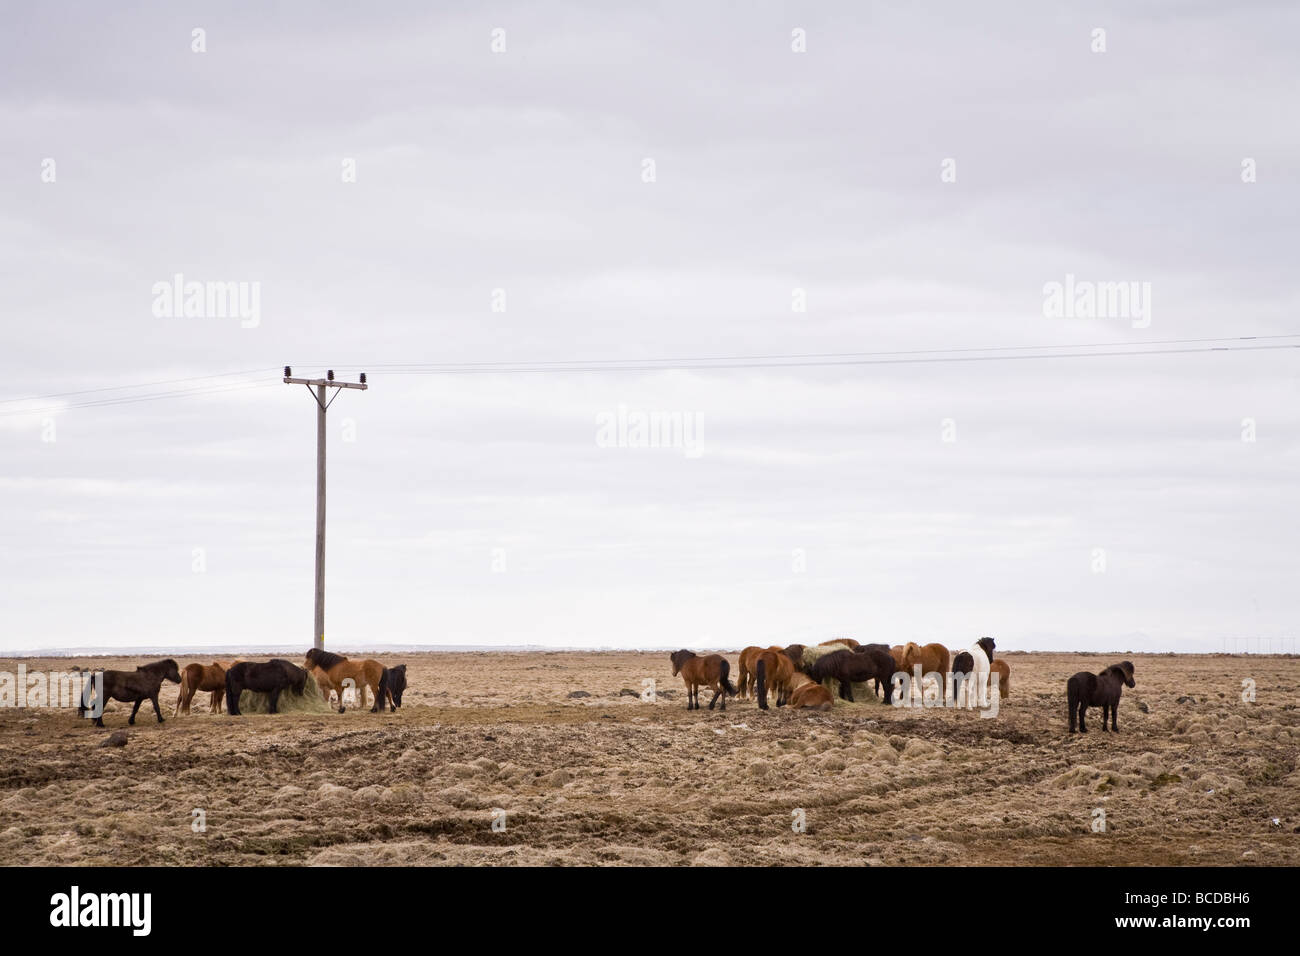 Horses grazing in a field, powerlines above. South Iceland - Stock Image